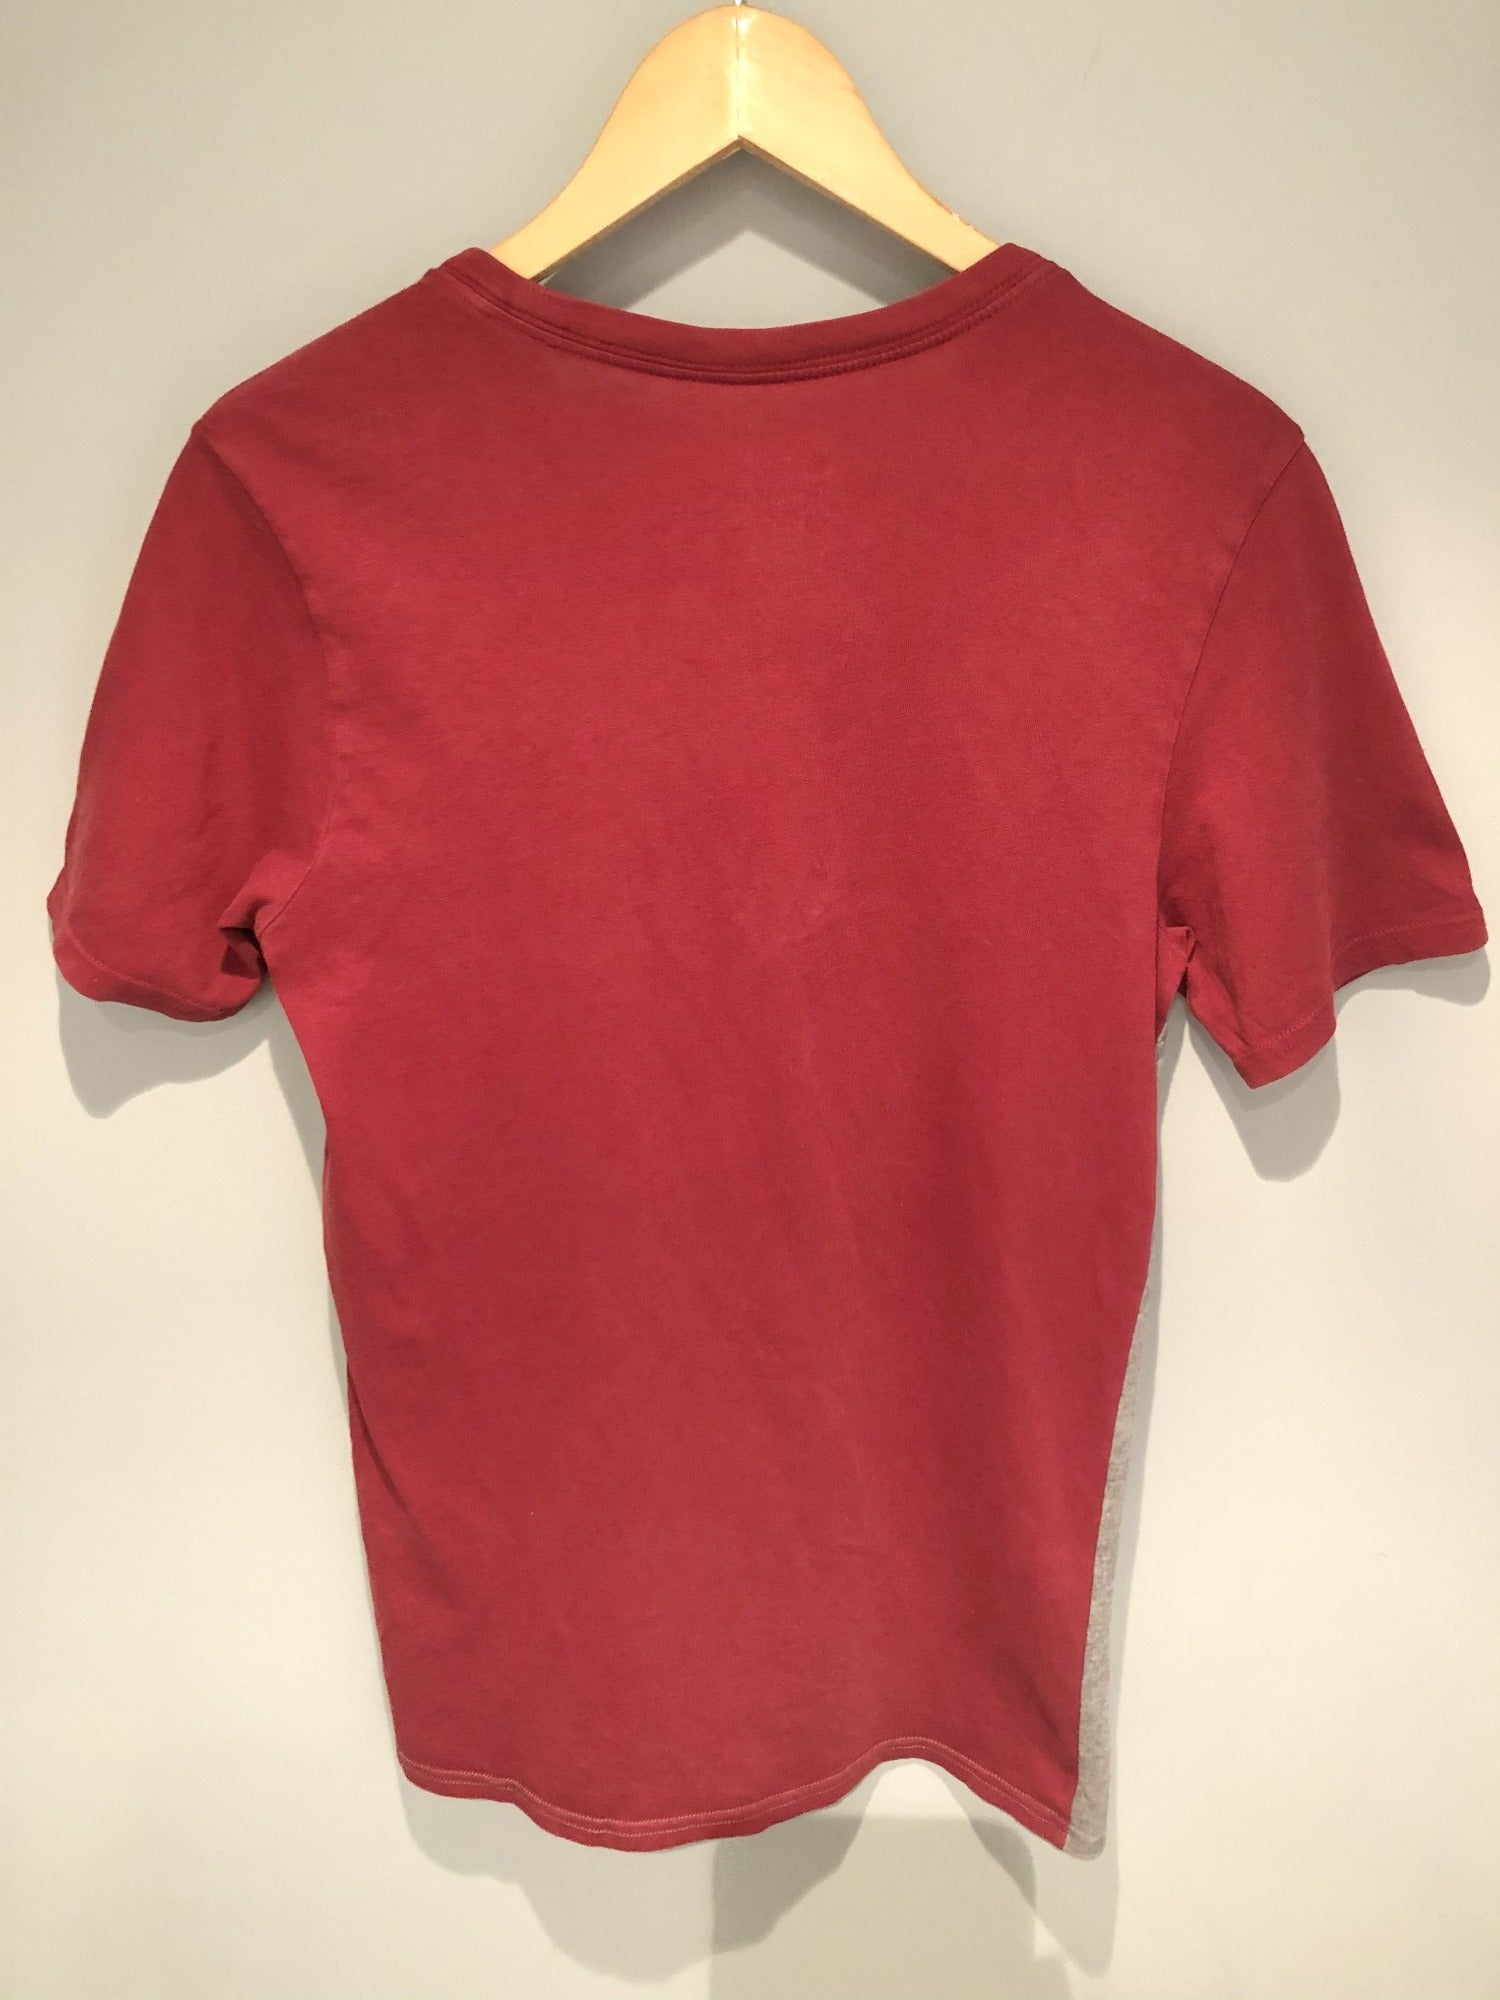 Nike Air Athletic Cut T-Shirt Red and Grey- Size S - Urban Village Vintage Sportswear